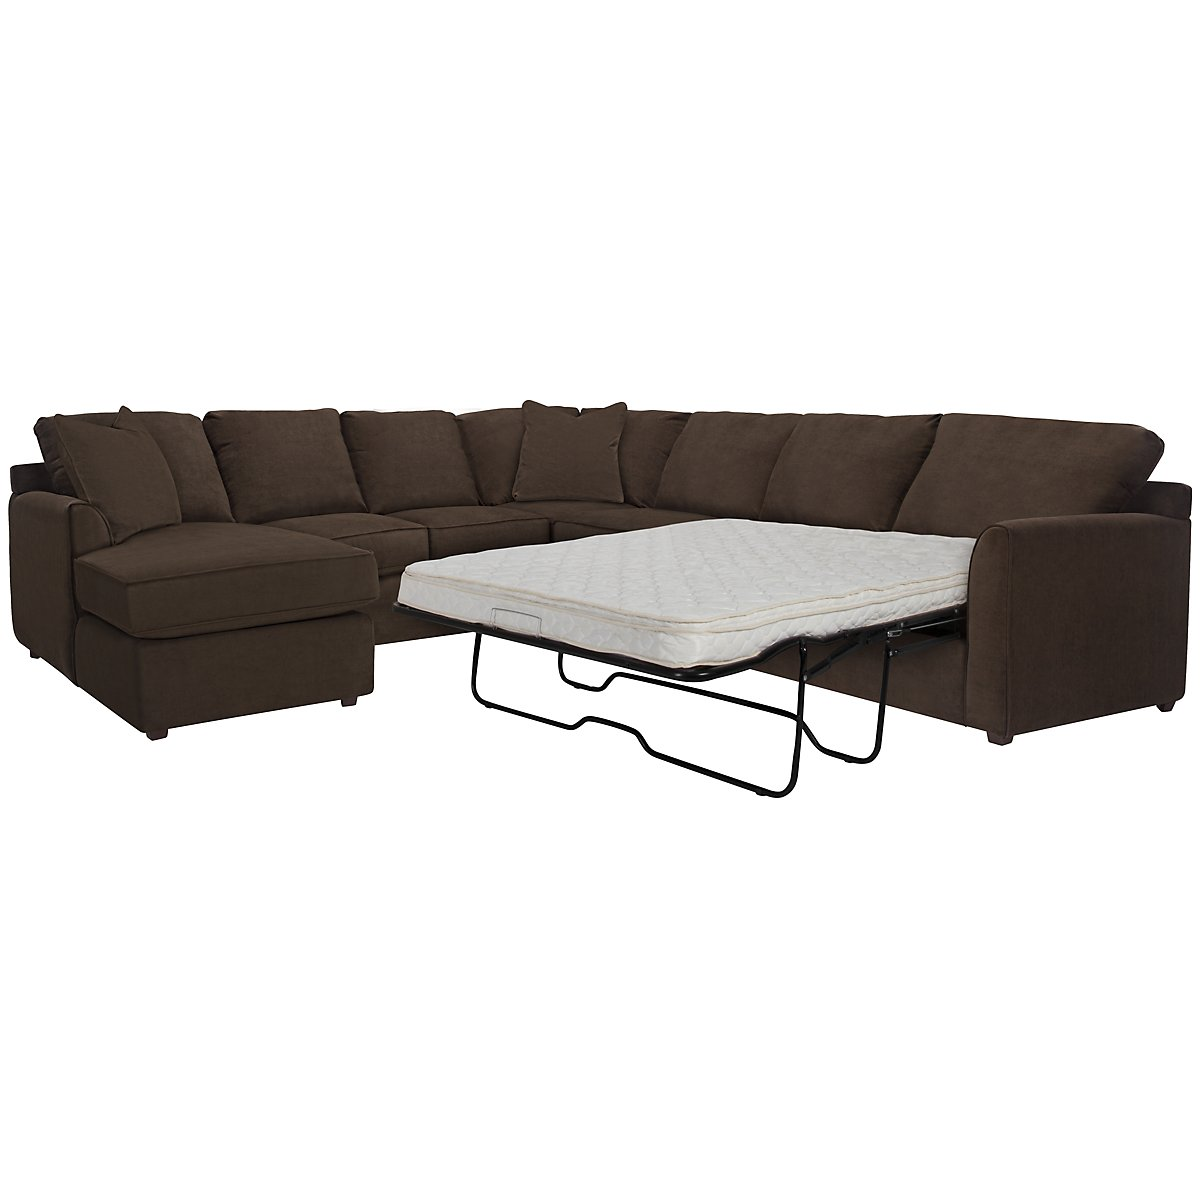 Express3 Dark Brown Microfiber Left Chaise Innerspring Sleeper Sectional